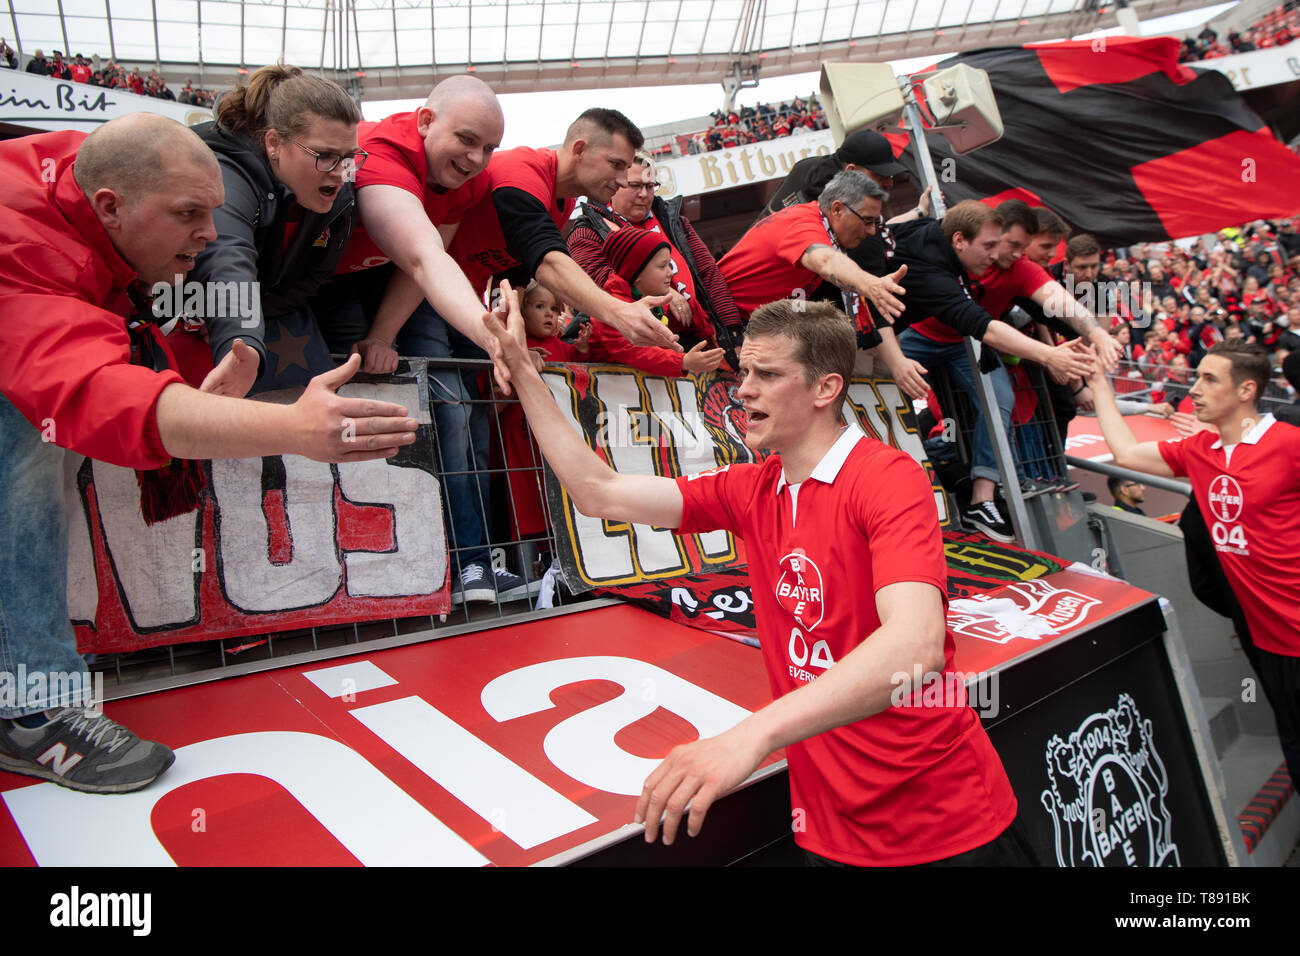 Leverkusen, Germany. 11th May, 2019. Soccer: Bundesliga, Bayer Leverkusen - FC Schalke 04, 33rd matchday in the BayArena. Leverkusen's Sven Bender (M) claps his hands with the fans in the stands. Credit: Federico Gambarini/dpa - IMPORTANT NOTE: In accordance with the requirements of the DFL Deutsche Fußball Liga or the DFB Deutscher Fußball-Bund, it is prohibited to use or have used photographs taken in the stadium and/or the match in the form of sequence images and/or video-like photo sequences./dpa/Alamy Live News - Stock Image